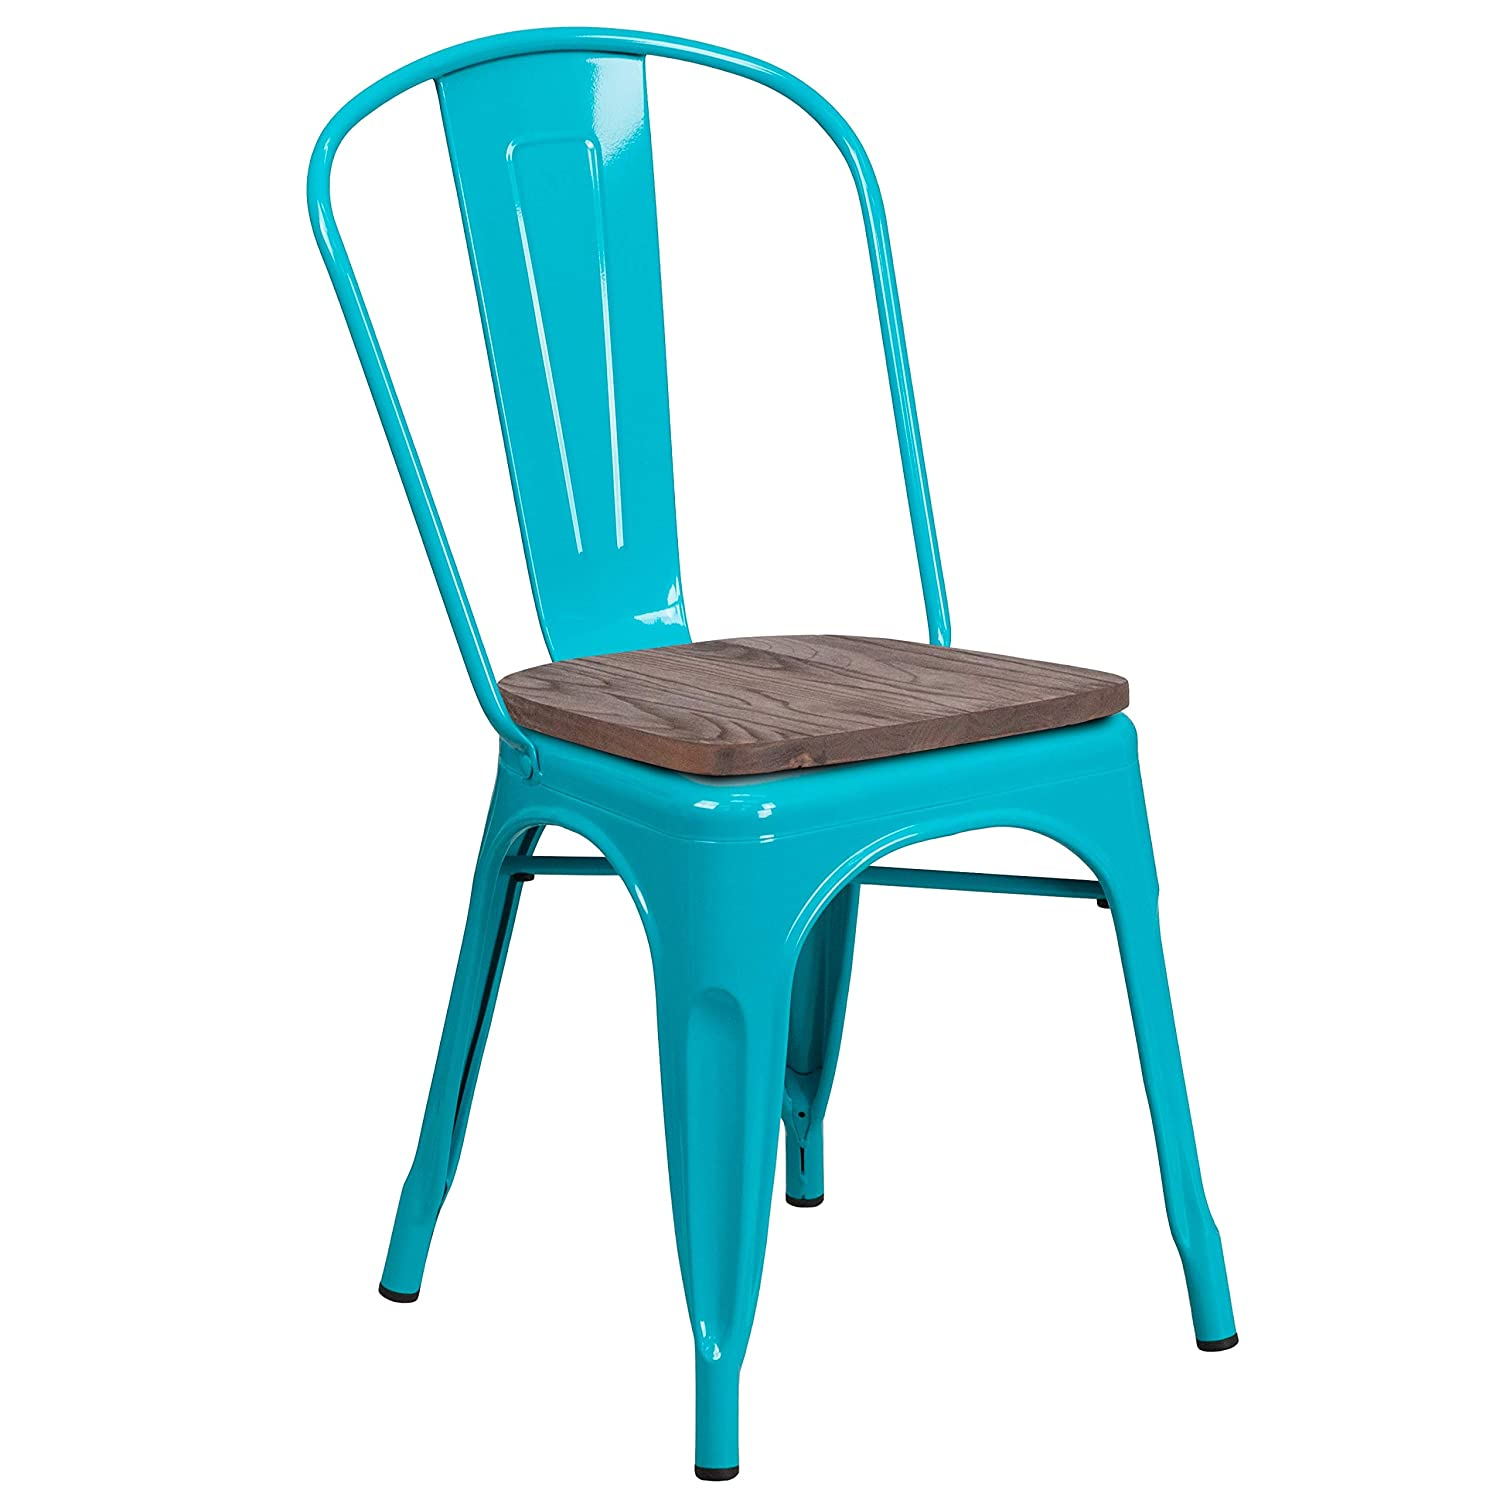 Super beauty product restock quality top! MFO Crystal Teal-Blue Popularity Metal Stackable Chair Seat Wood with